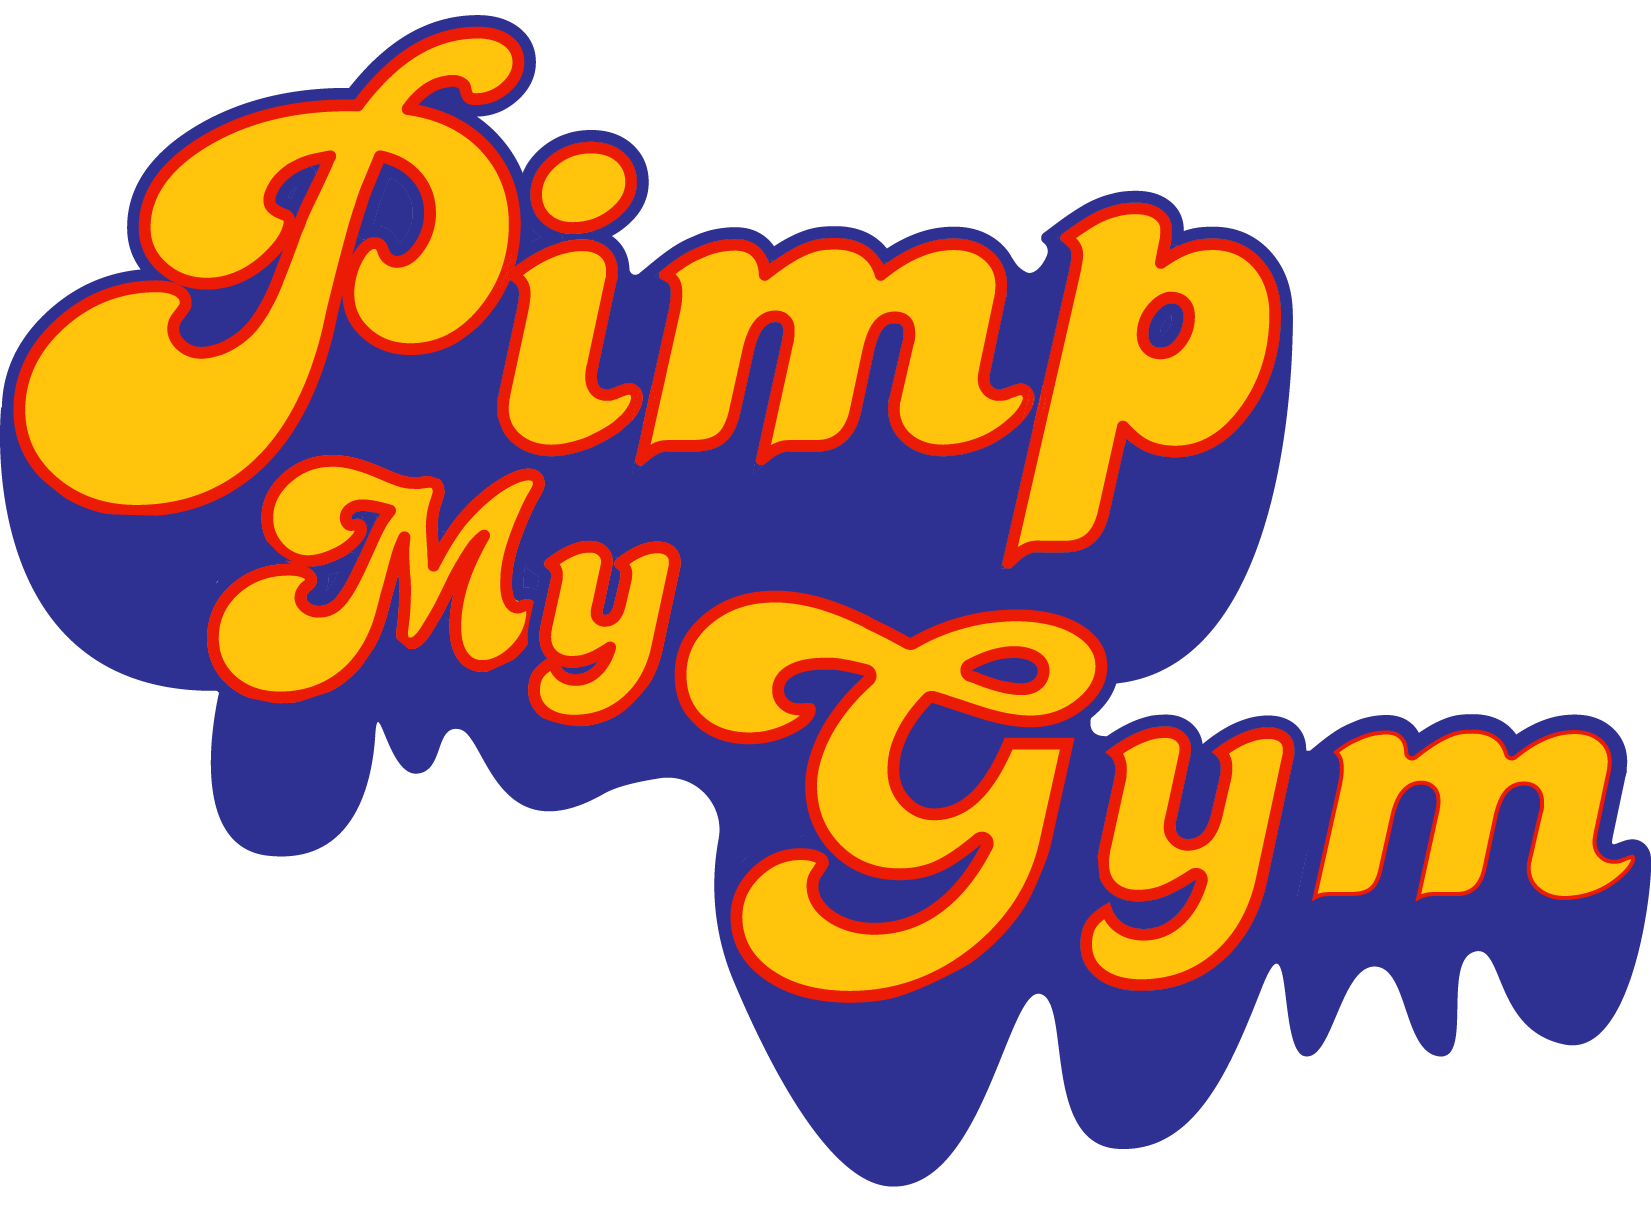 Gym clipart strength and conditioning. Pimp my february vero